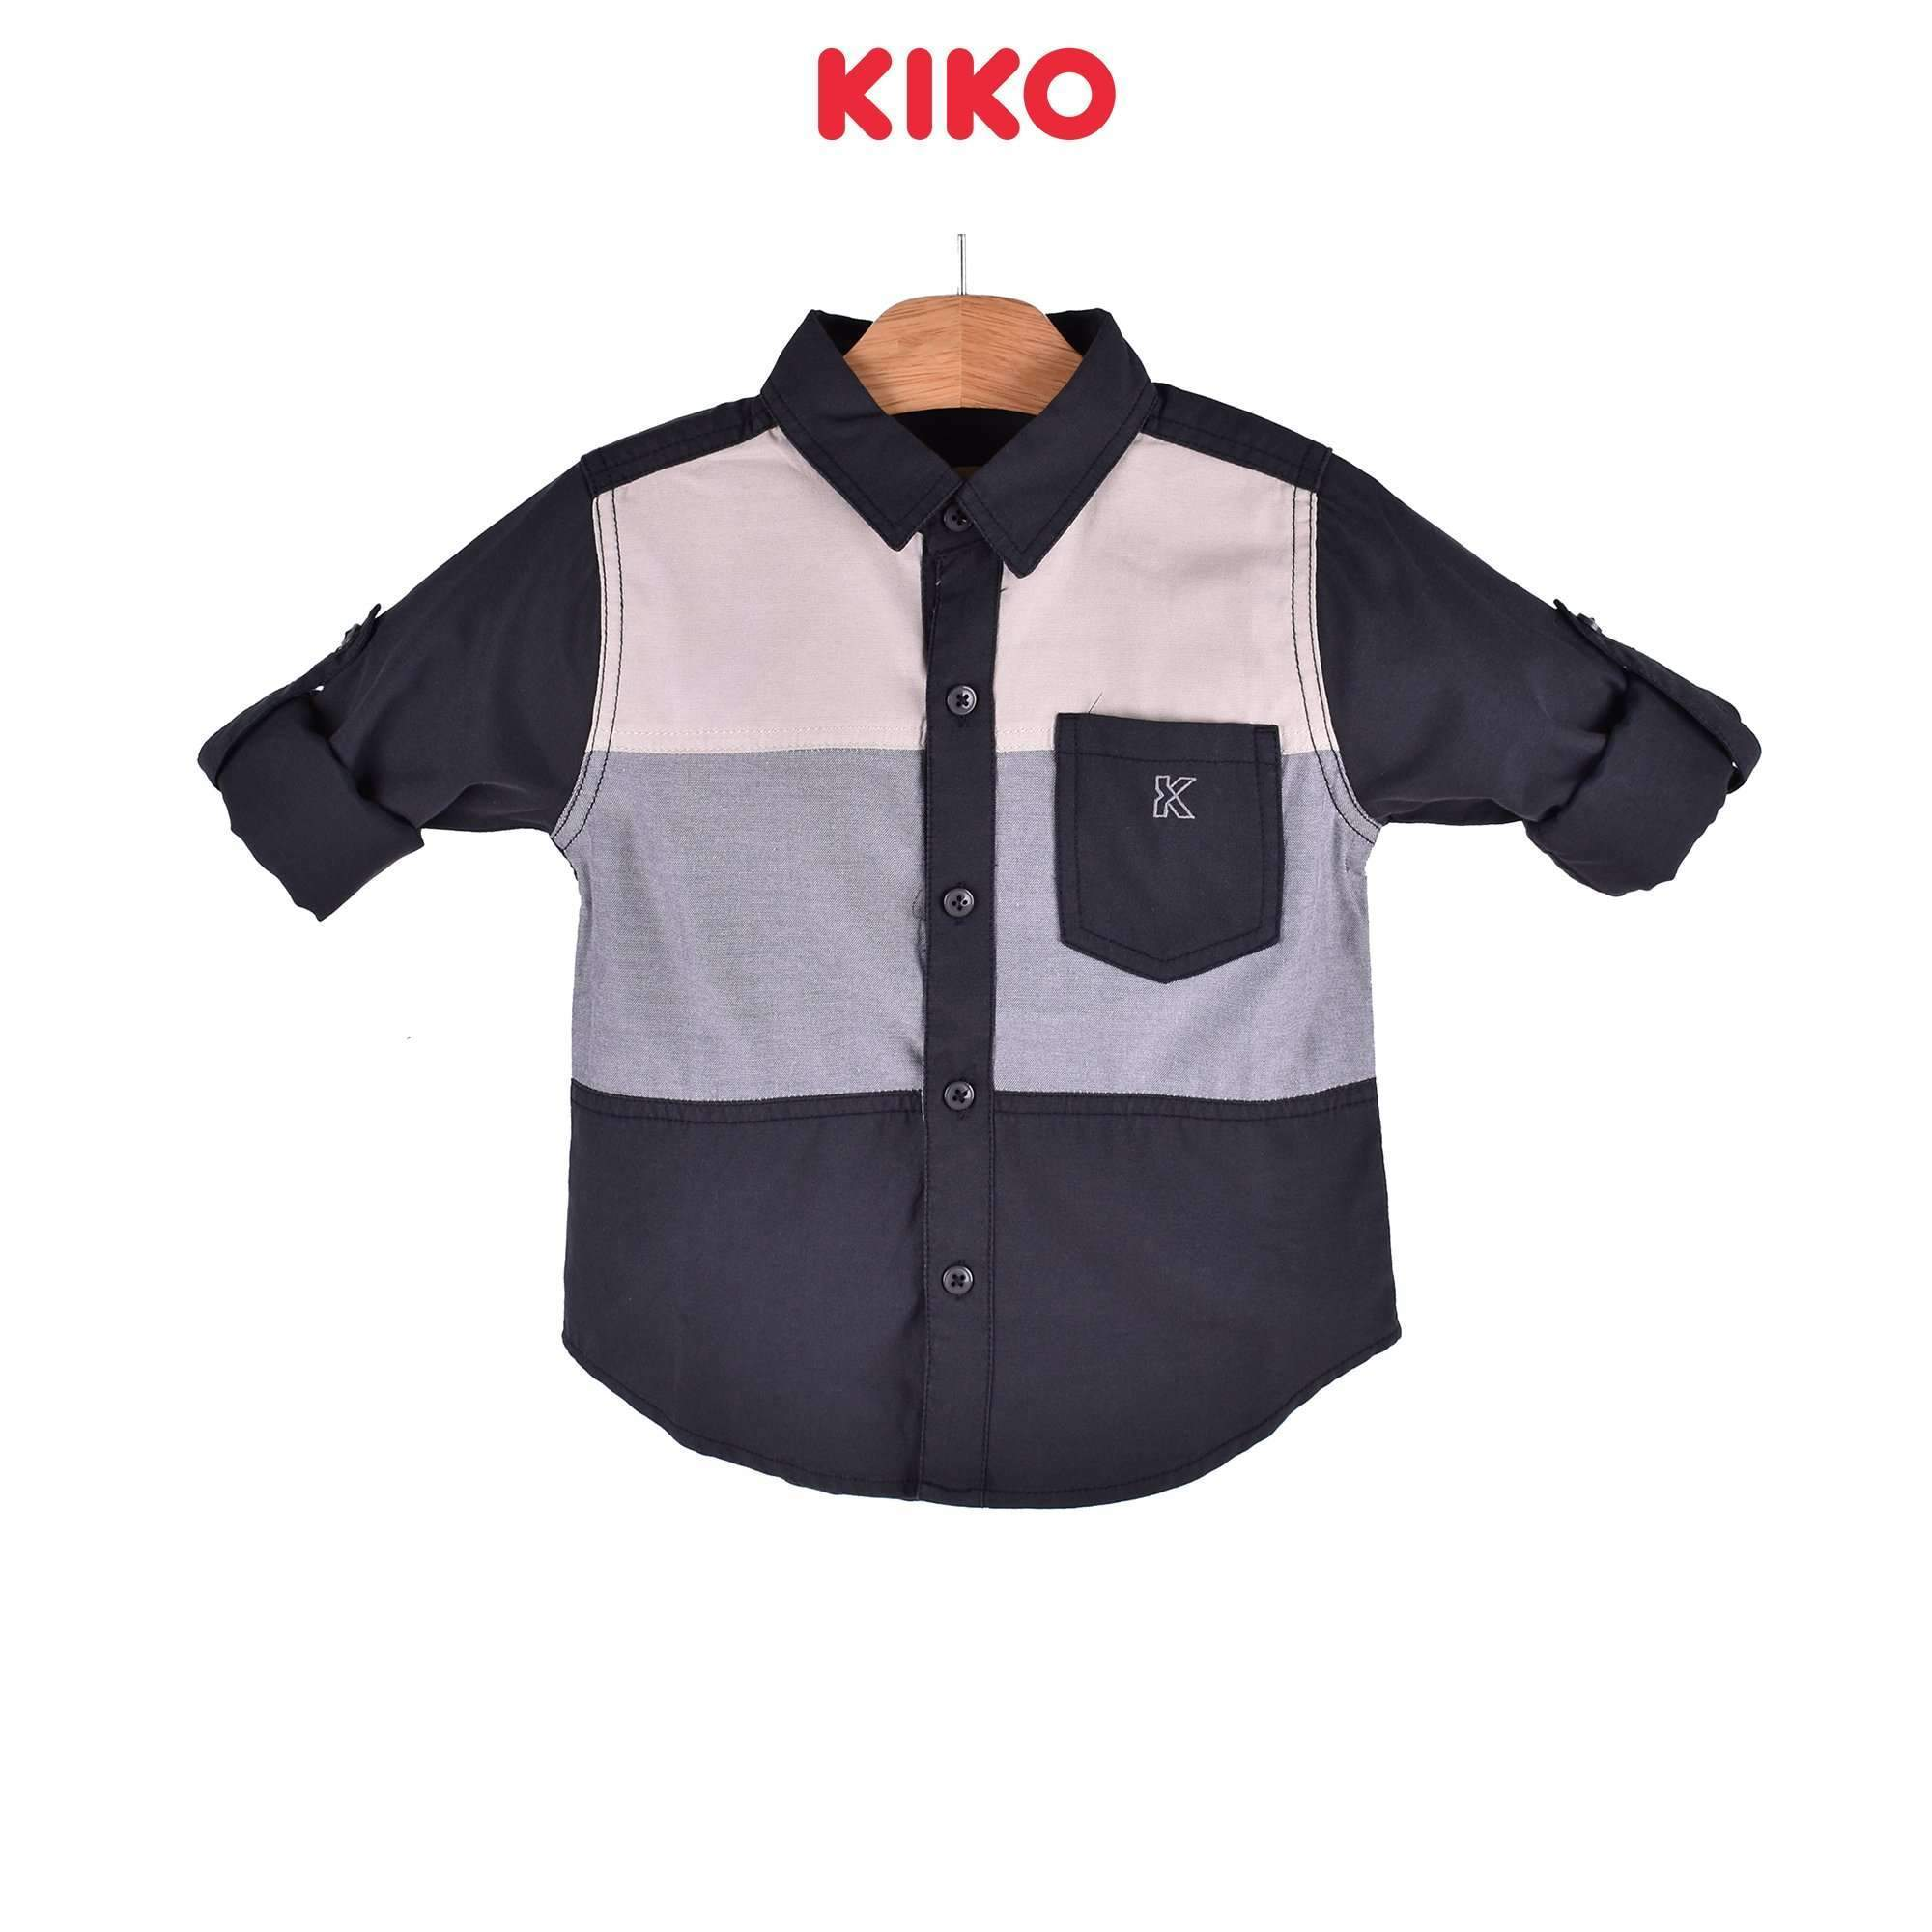 KIKO Boy Long Sleeve Shirt - Black 120070-151 : Buy KIKO online at CMG.MY